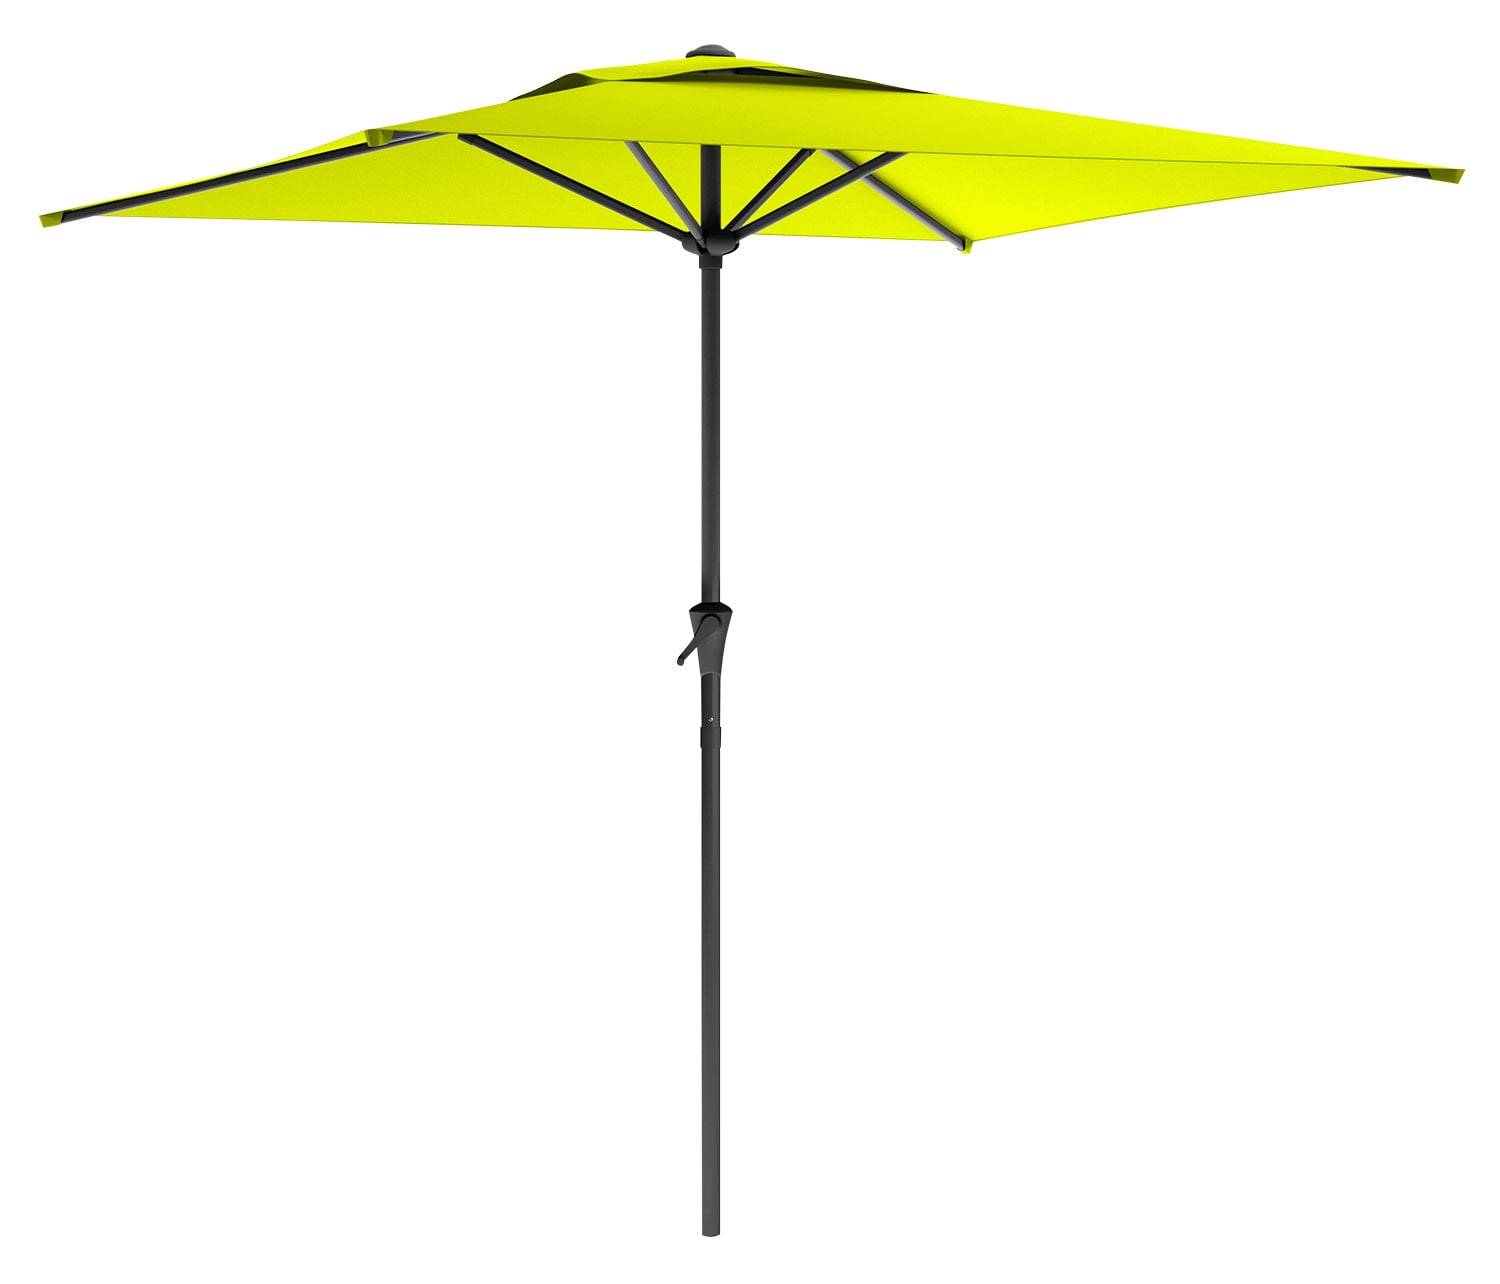 Square Patio Umbrella – Lime Green